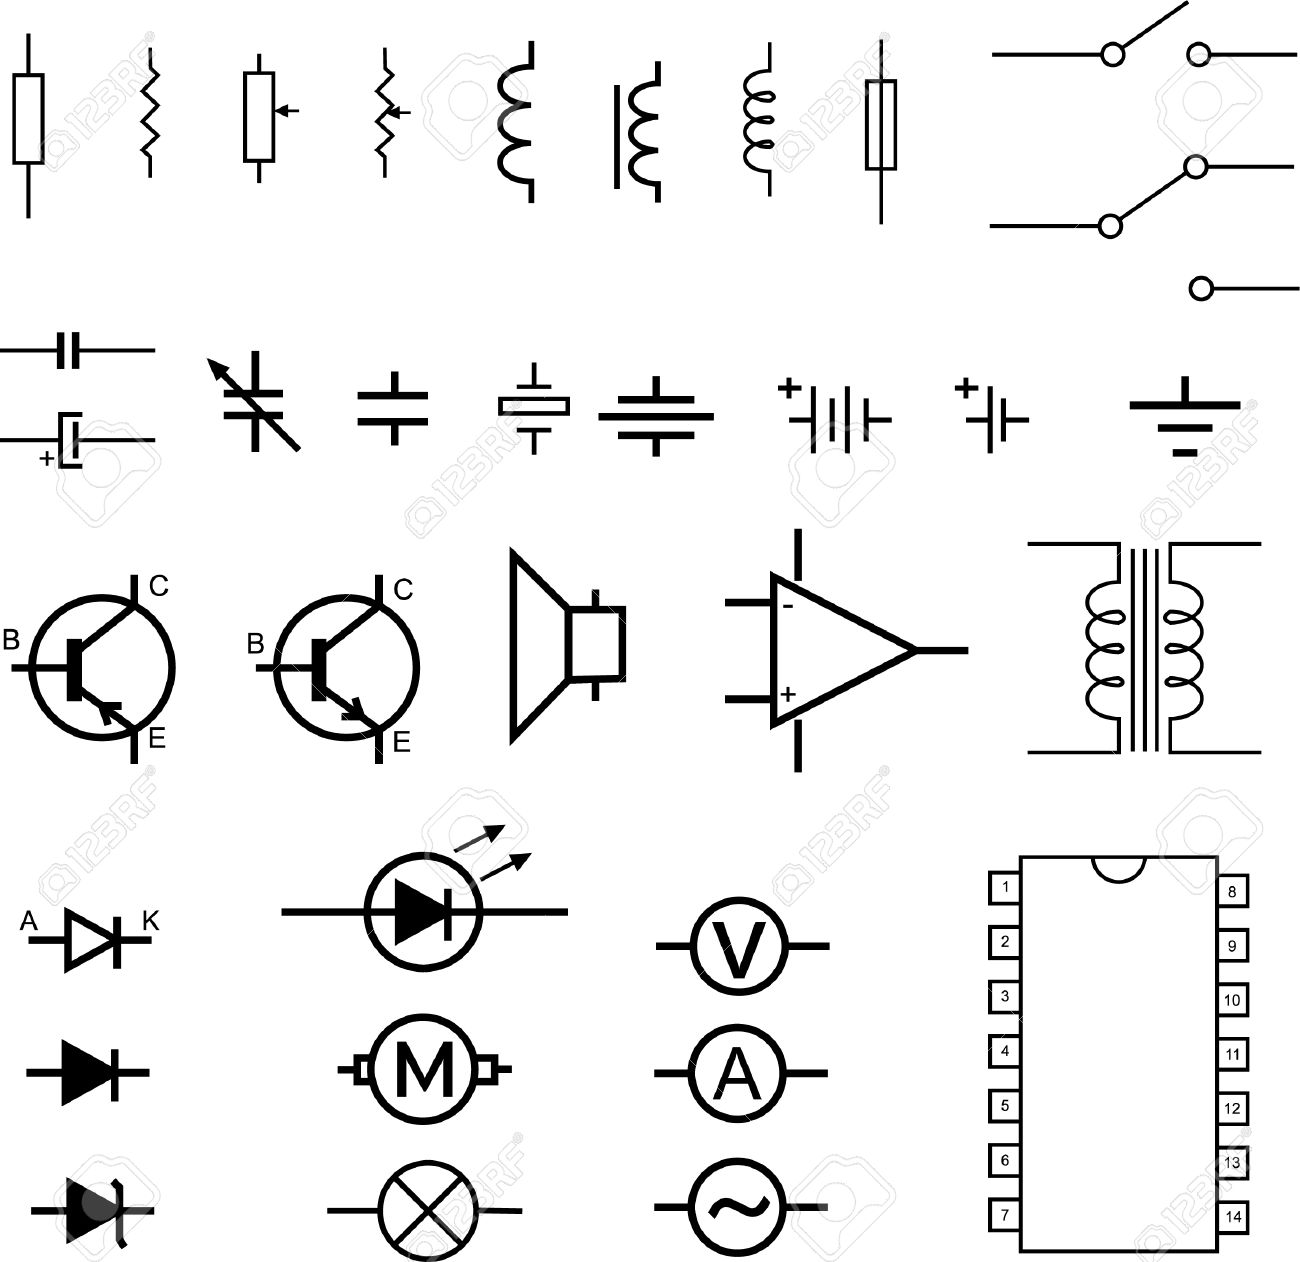 Electronic Symbols - Vector Royalty Free Cliparts, Vectors, And ...